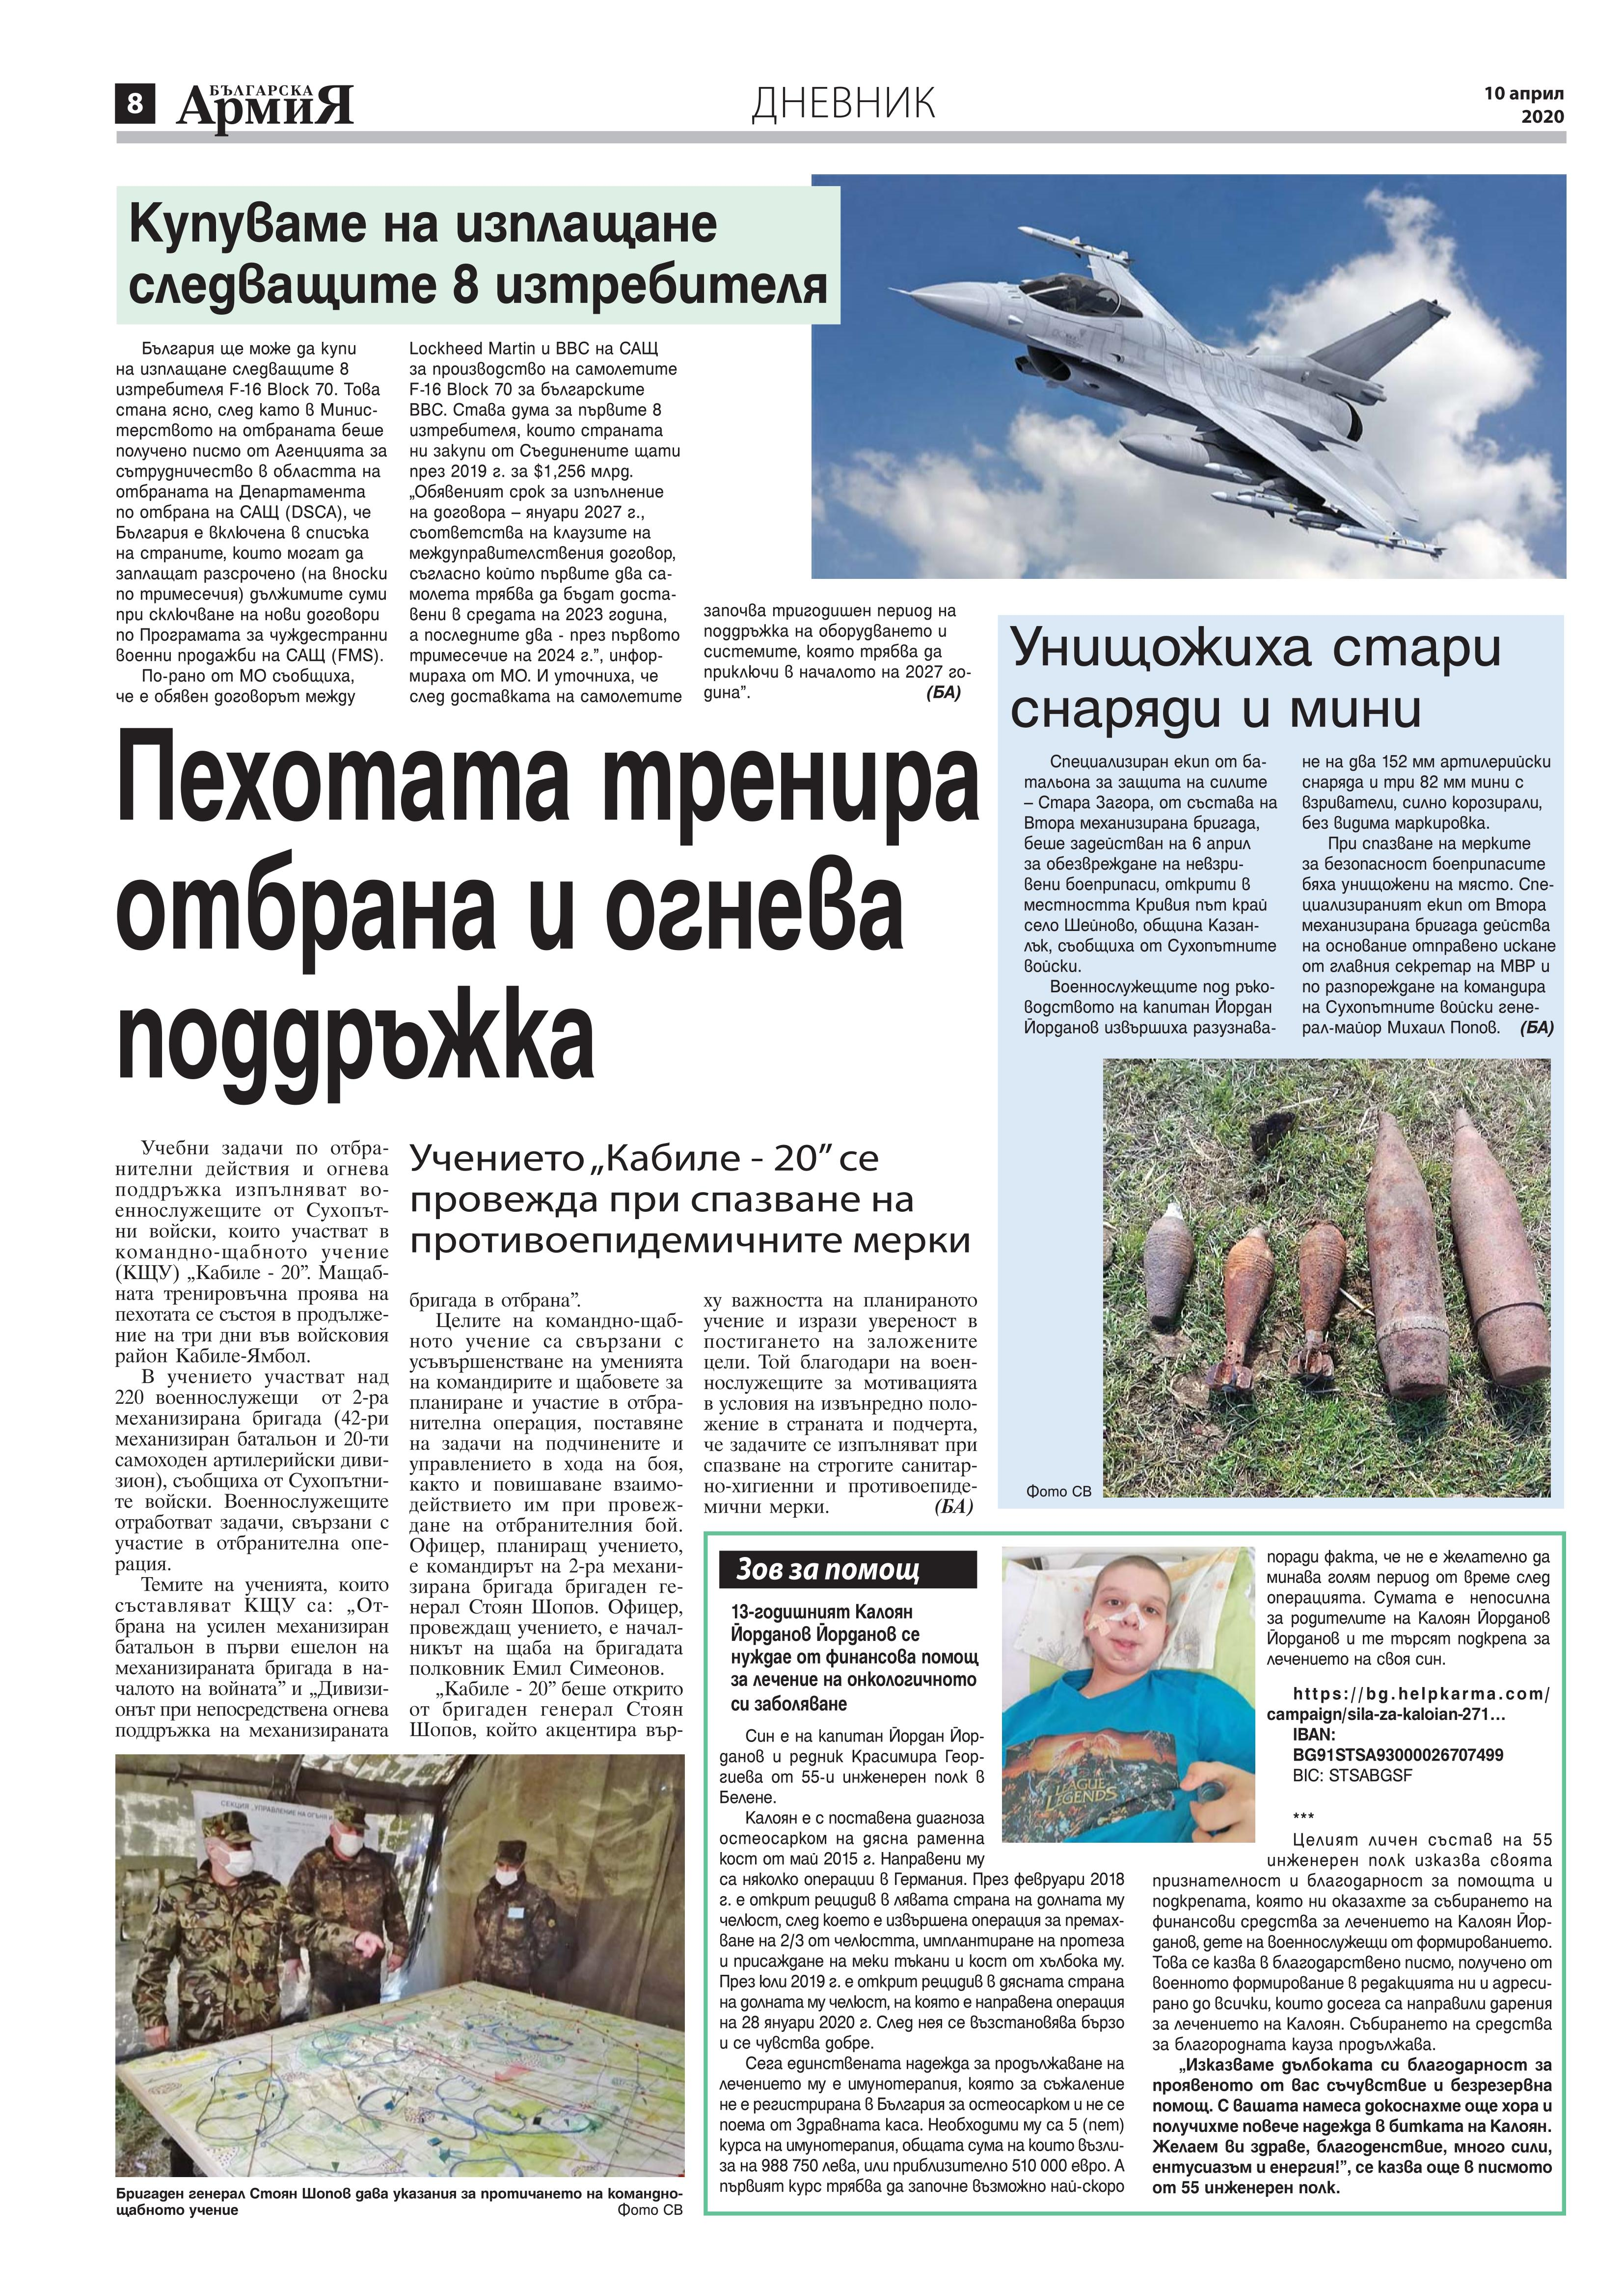 https://www.armymedia.bg/wp-content/uploads/2015/06/08.page1_-131.jpg